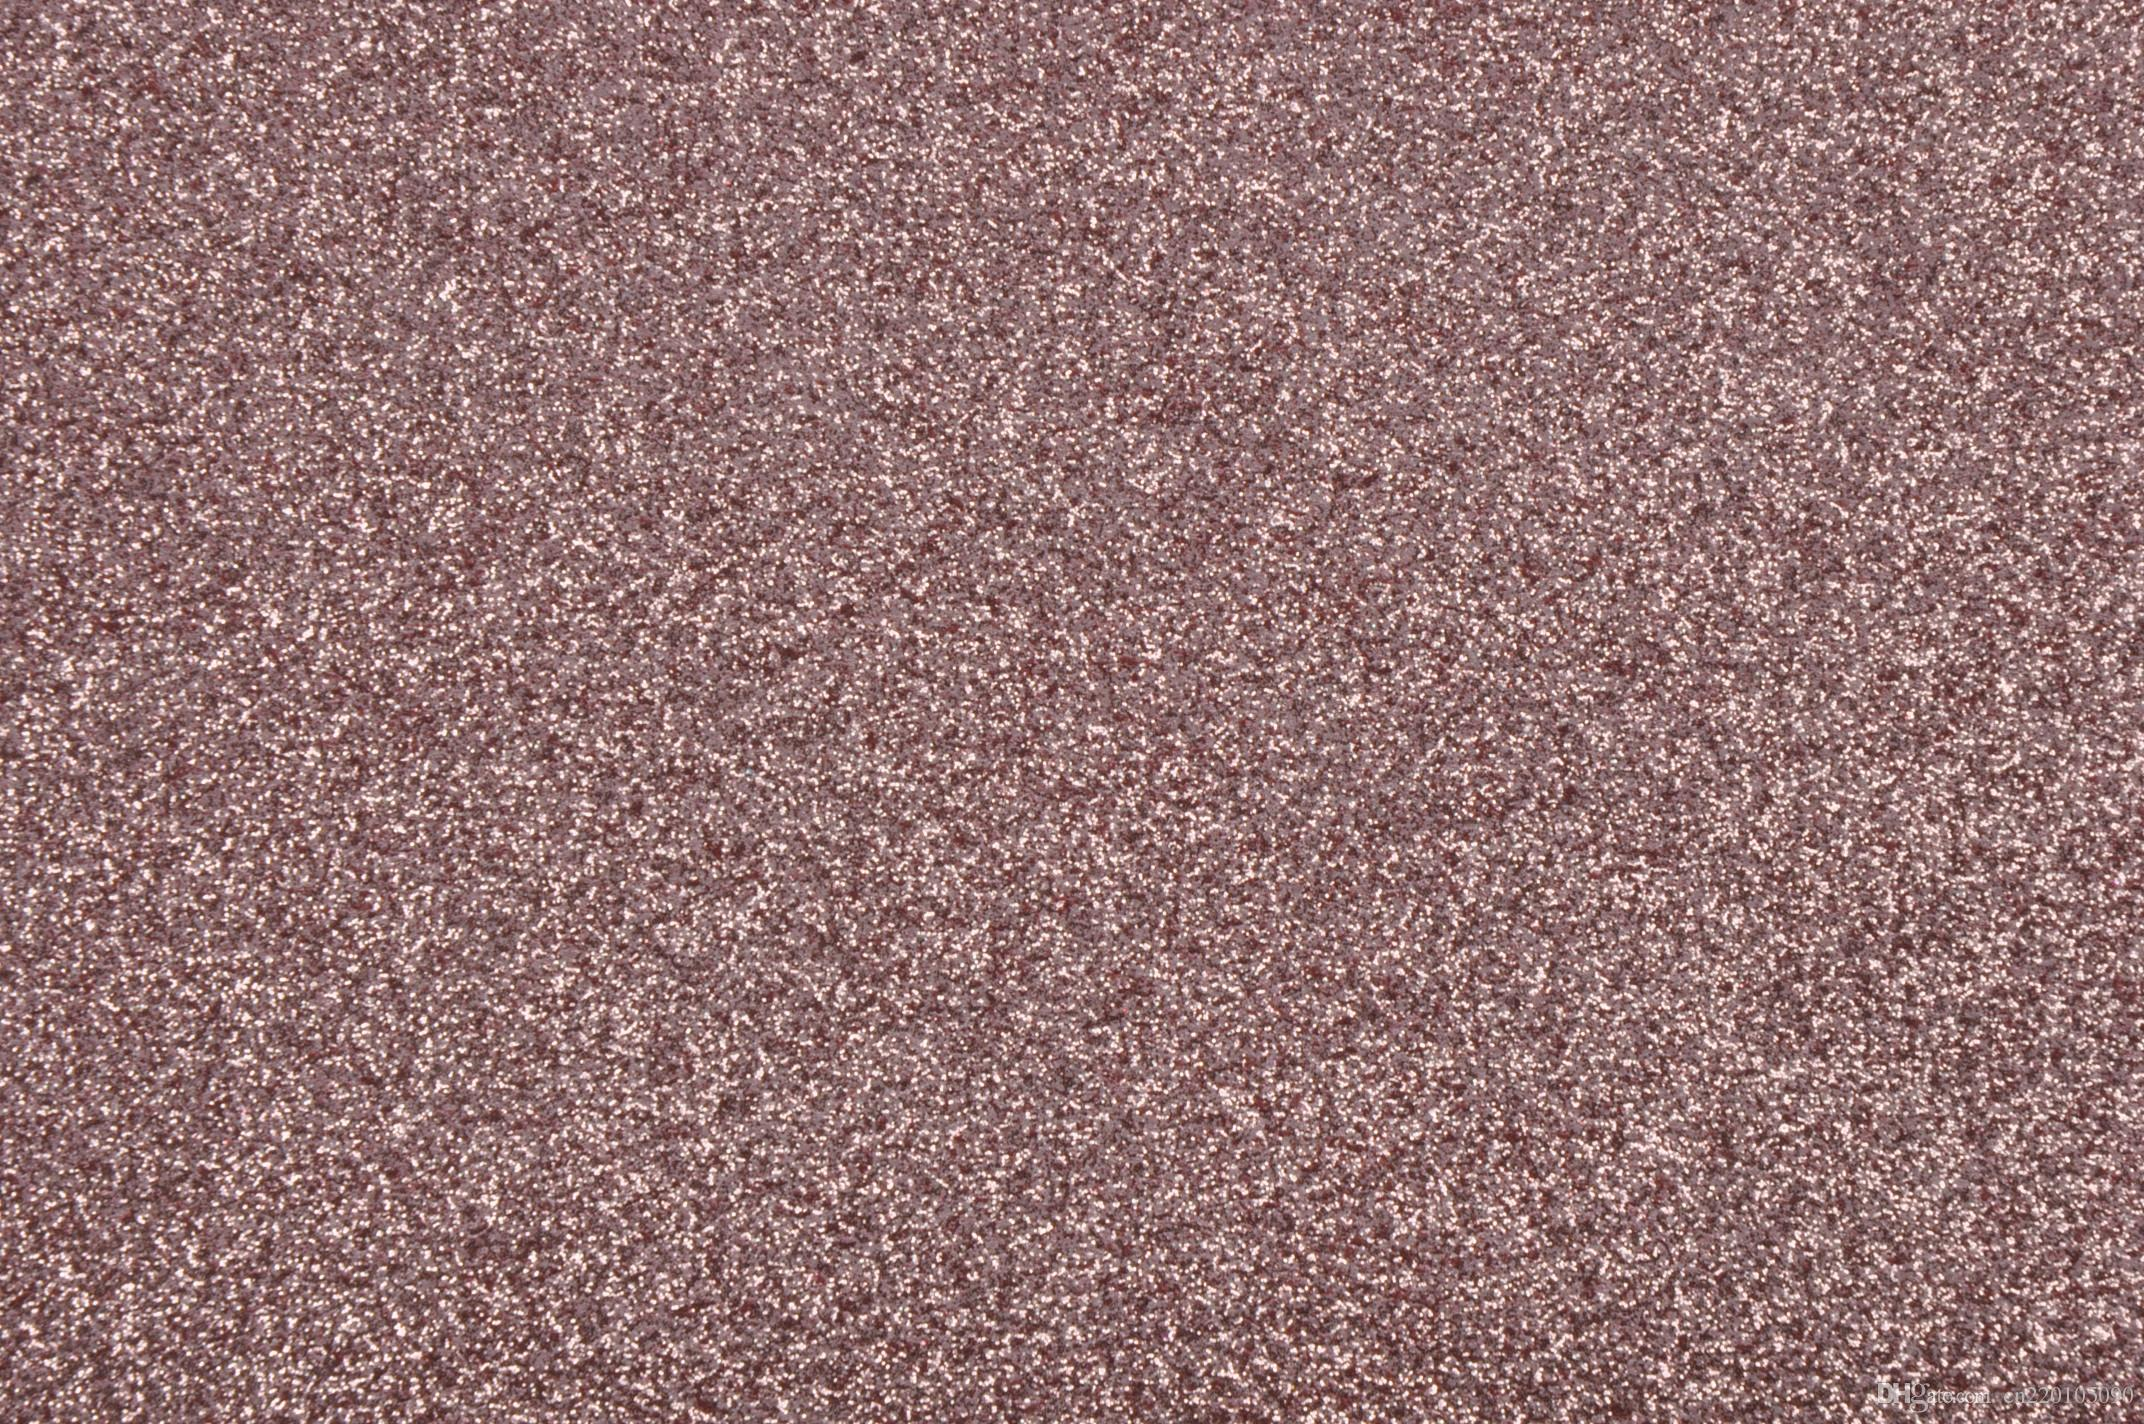 Jc Pack Eco Friendly Red Glitter Wallpaper Champagne Fabric Vinyl Leather 50m Roll Drop Shipping Free Screensaver